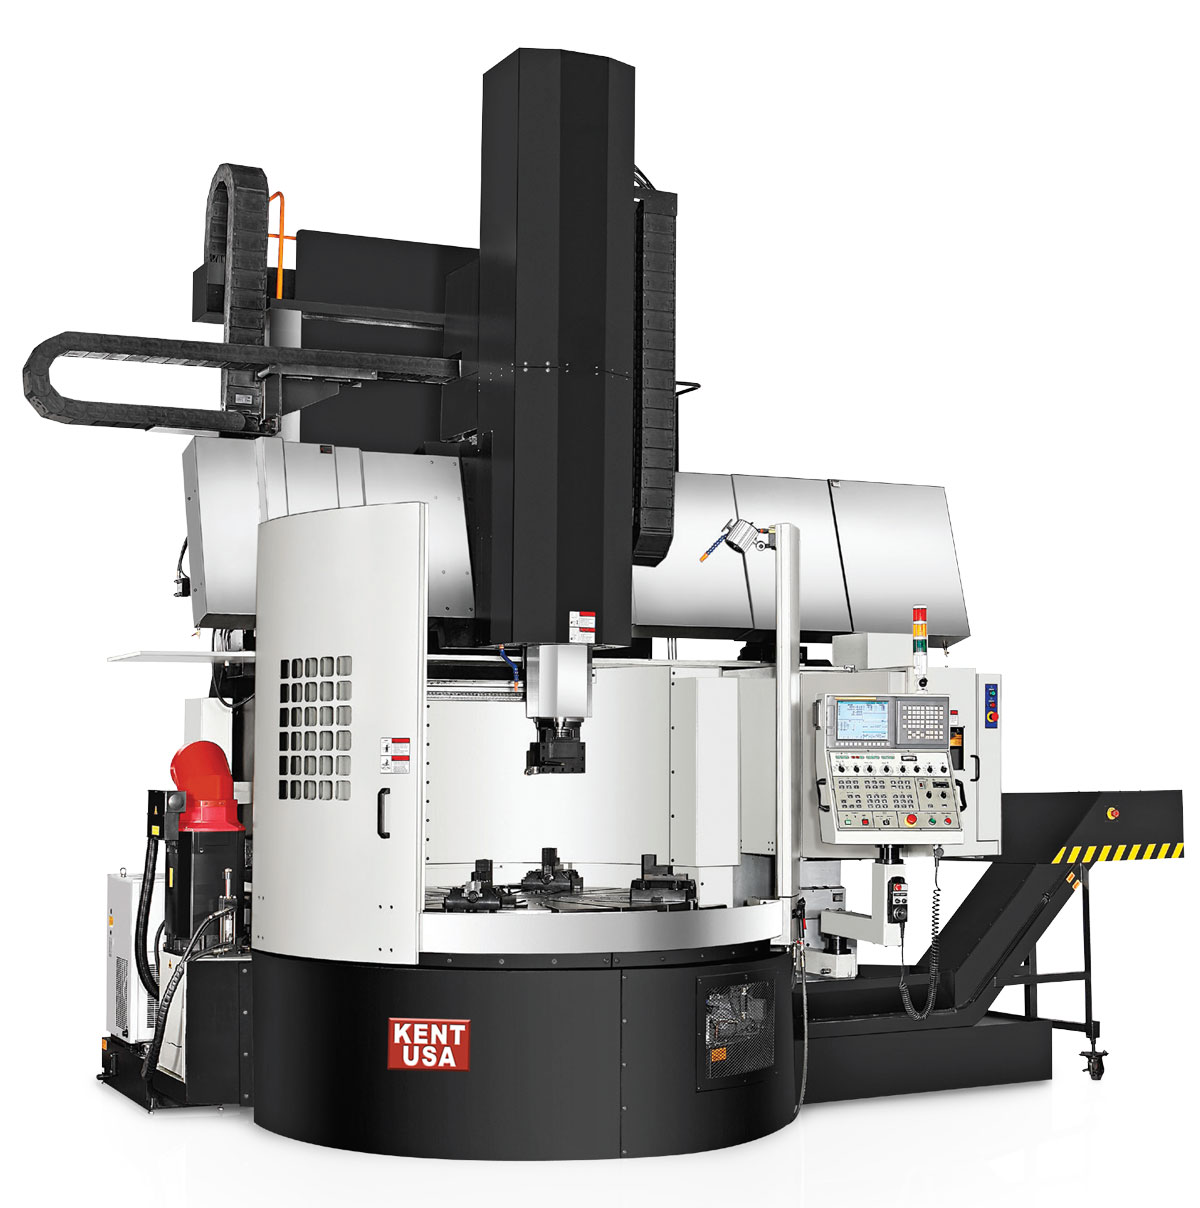 Kent-CNC-KVT-Large-Vertical-Turning-Center